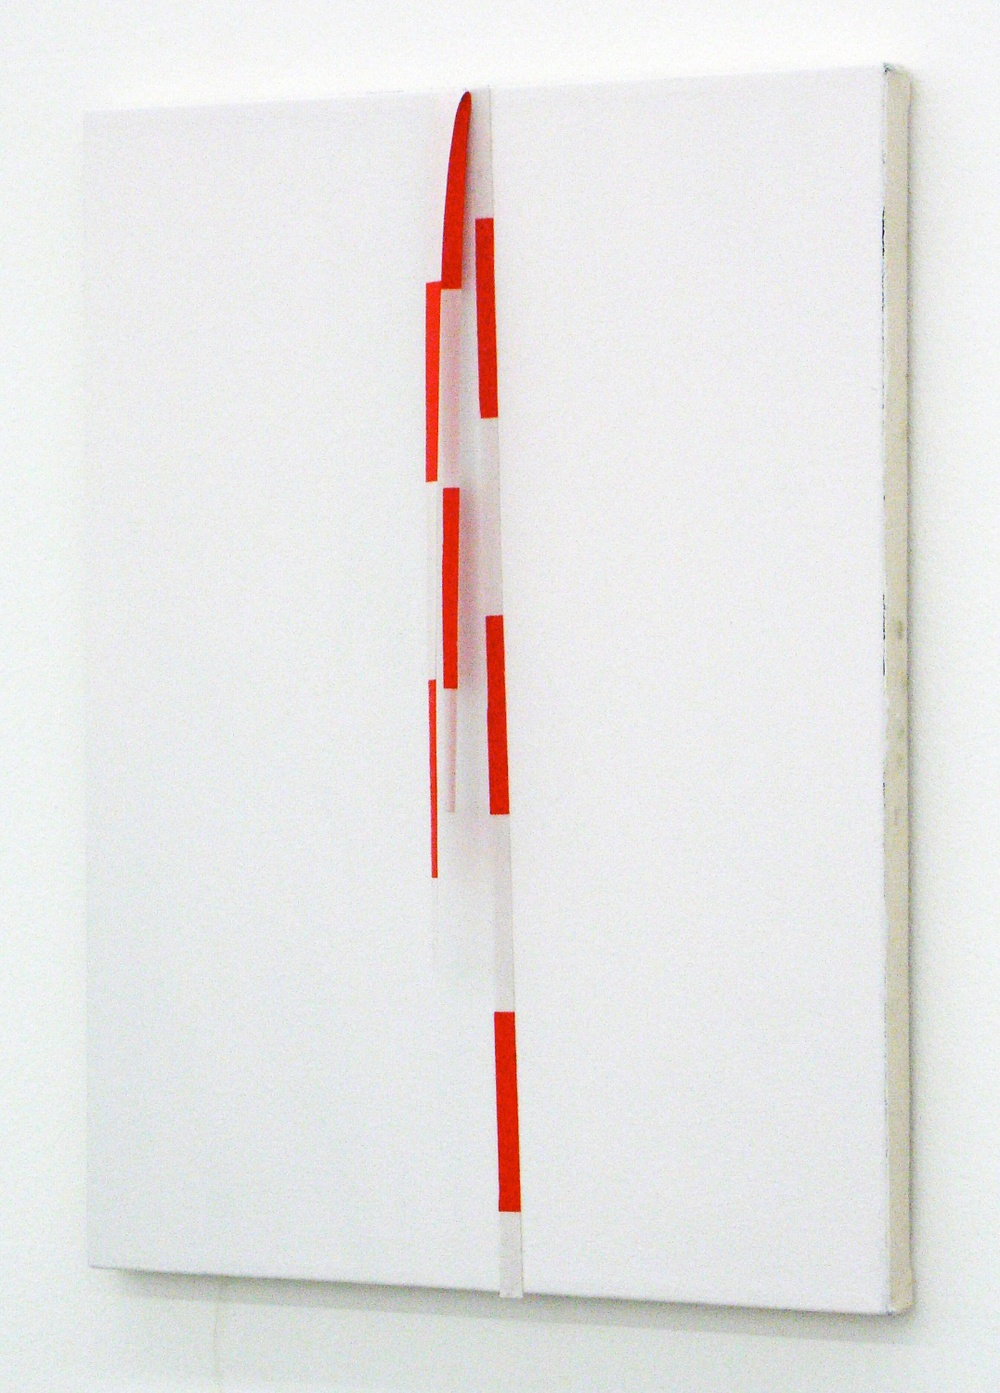 Lisa Williamson  Red and White Band  2009 Enamel and fabric on canvas 20h x 16w in LW013